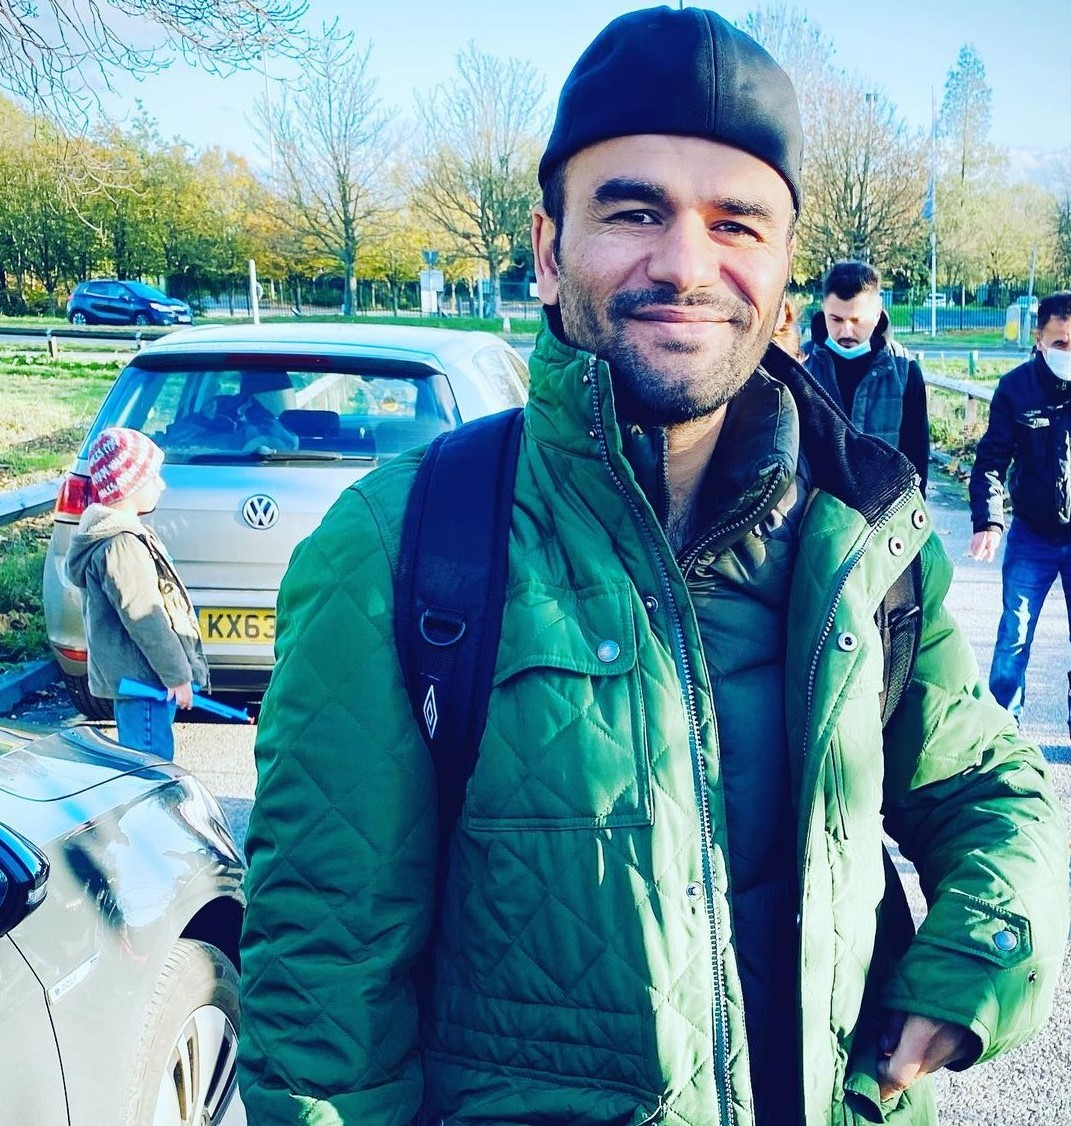 Meet the refugee who gave up his winter coat